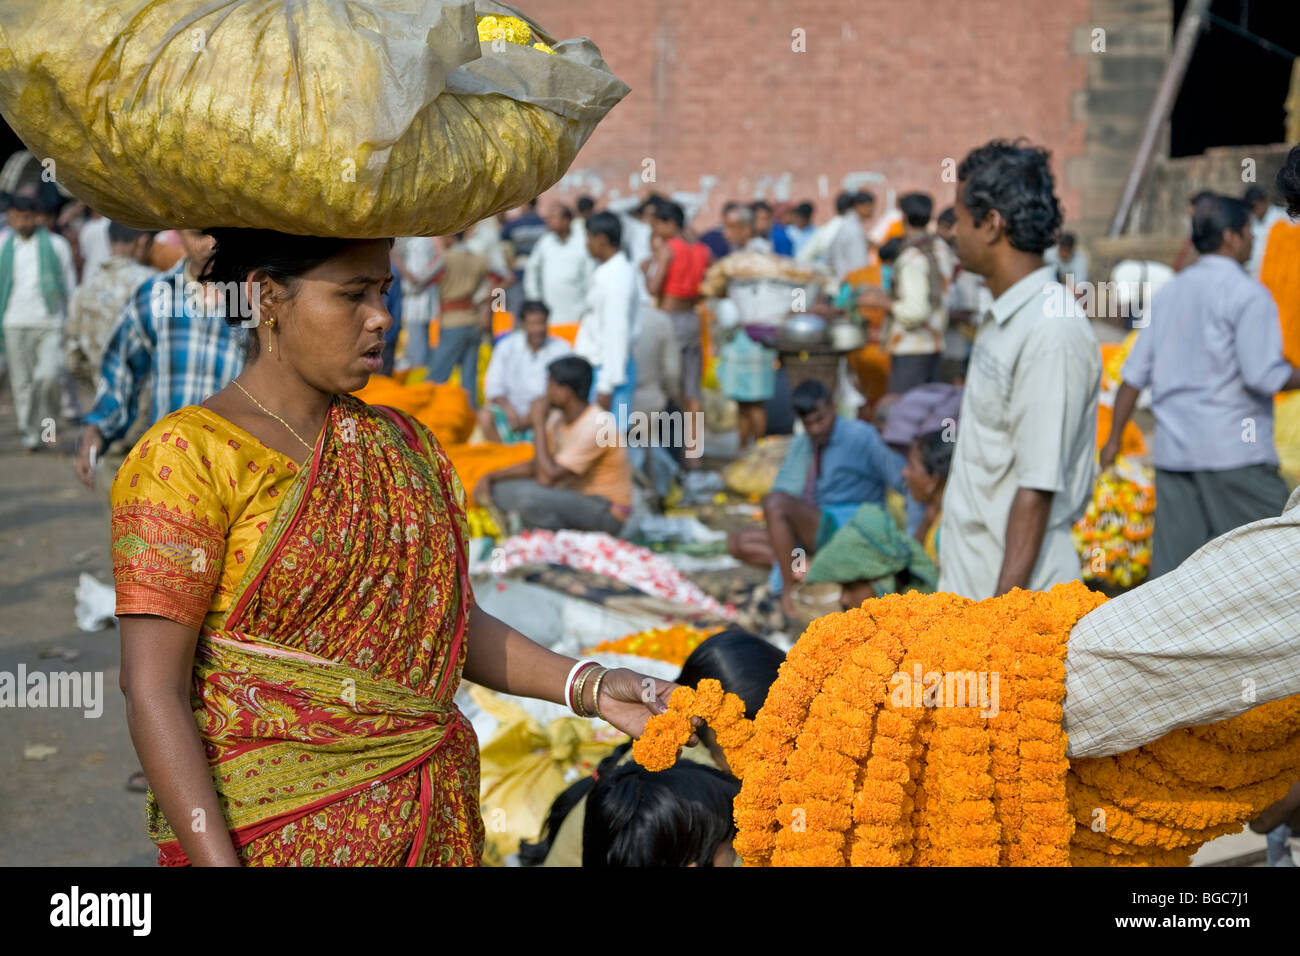 Indian woman checking the flower garlands. Flowers market. Calcutta (Kolkata). India - Stock Image